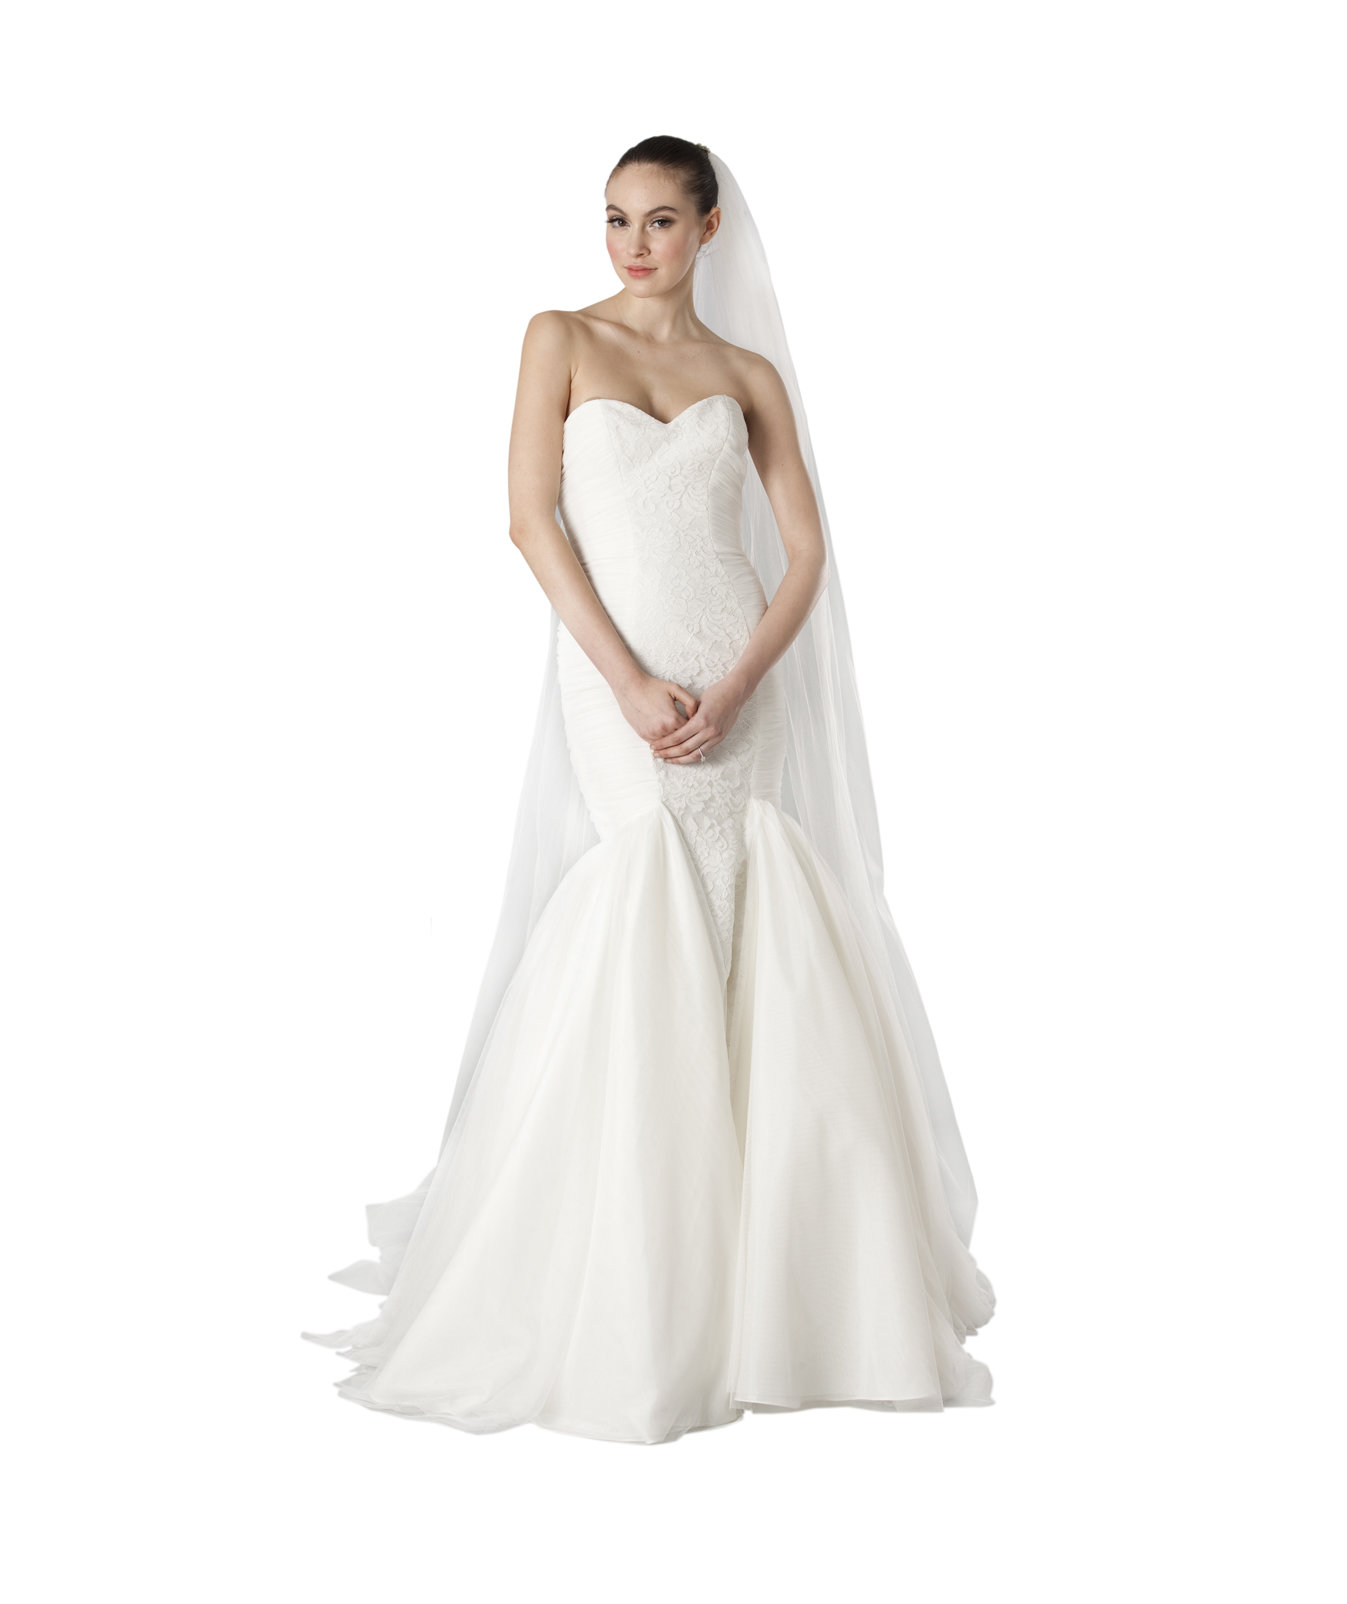 Theia Wedding Gown: Stunning Off-the-Rack Wedding Dresses